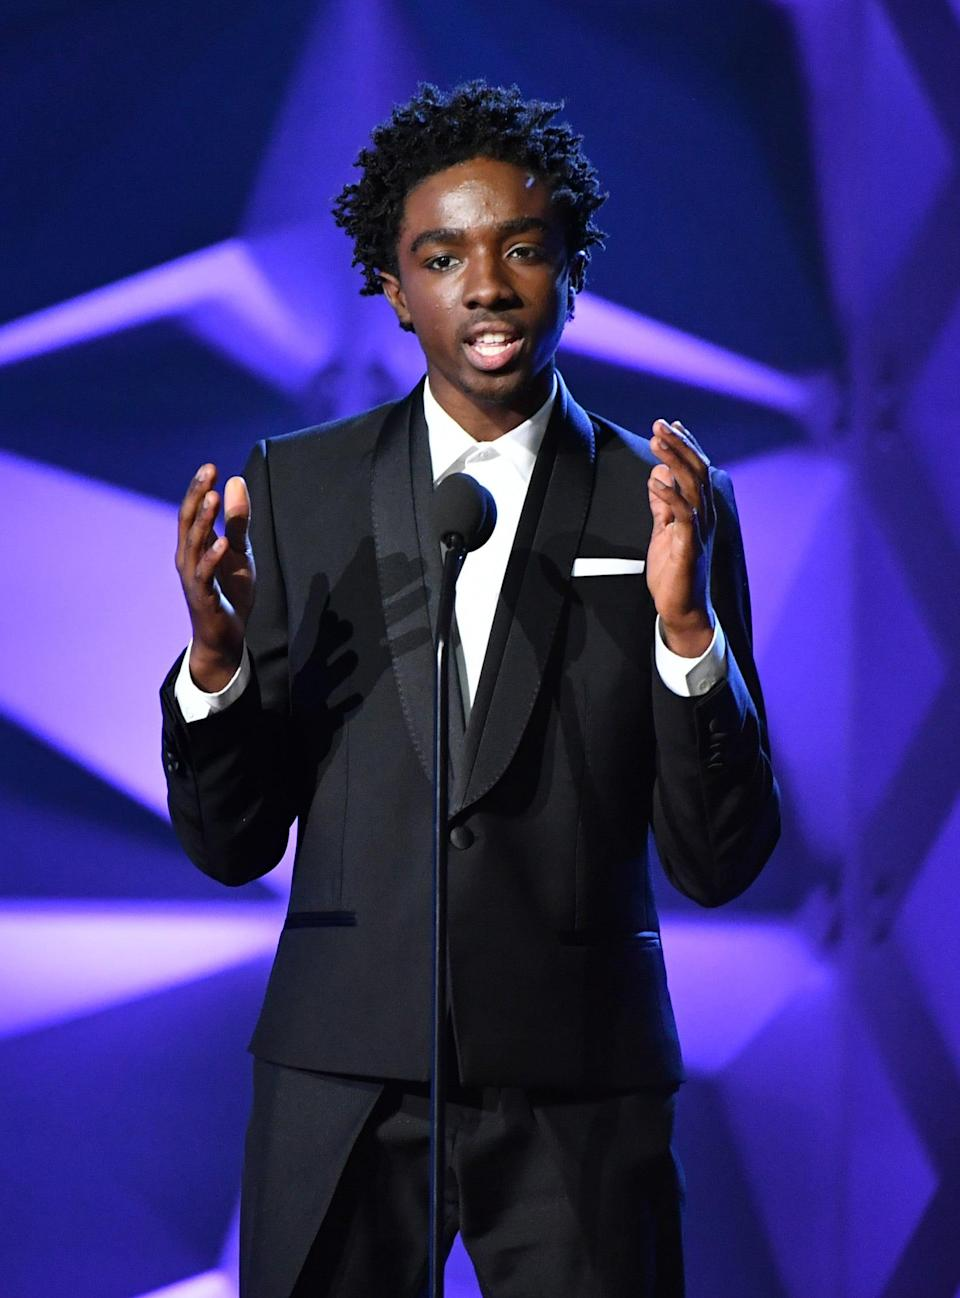 """<p>As a way to cope with his own self-confidence and love, <a href=""""https://www.instagram.com/therealcalebmclaughlin/"""" class=""""link rapid-noclick-resp"""" rel=""""nofollow noopener"""" target=""""_blank"""" data-ylk=""""slk:Caleb created"""">Caleb created</a> the #EmbraceYourFace and #BeYourBiggestFan movements. They're also a way for his fans and fellow cast members to embrace their own insecurities and share their stories. """"My parents always <a href=""""https://www.teenvogue.com/story/stranger-things-star-caleb-mclaughlin-talks-self-love-and-confidence"""" class=""""link rapid-noclick-resp"""" rel=""""nofollow noopener"""" target=""""_blank"""" data-ylk=""""slk:told me to be my biggest fan"""">told me to be my biggest fan</a> since I was young. When no one else is your fan, you have to be your own cheerleader,"""" he shared with <strong>Teen Vogue</strong>. """"I wanted to show people they have to love themselves and embrace that. I wanted to let them know I'm here for them and spread love.""""</p>"""